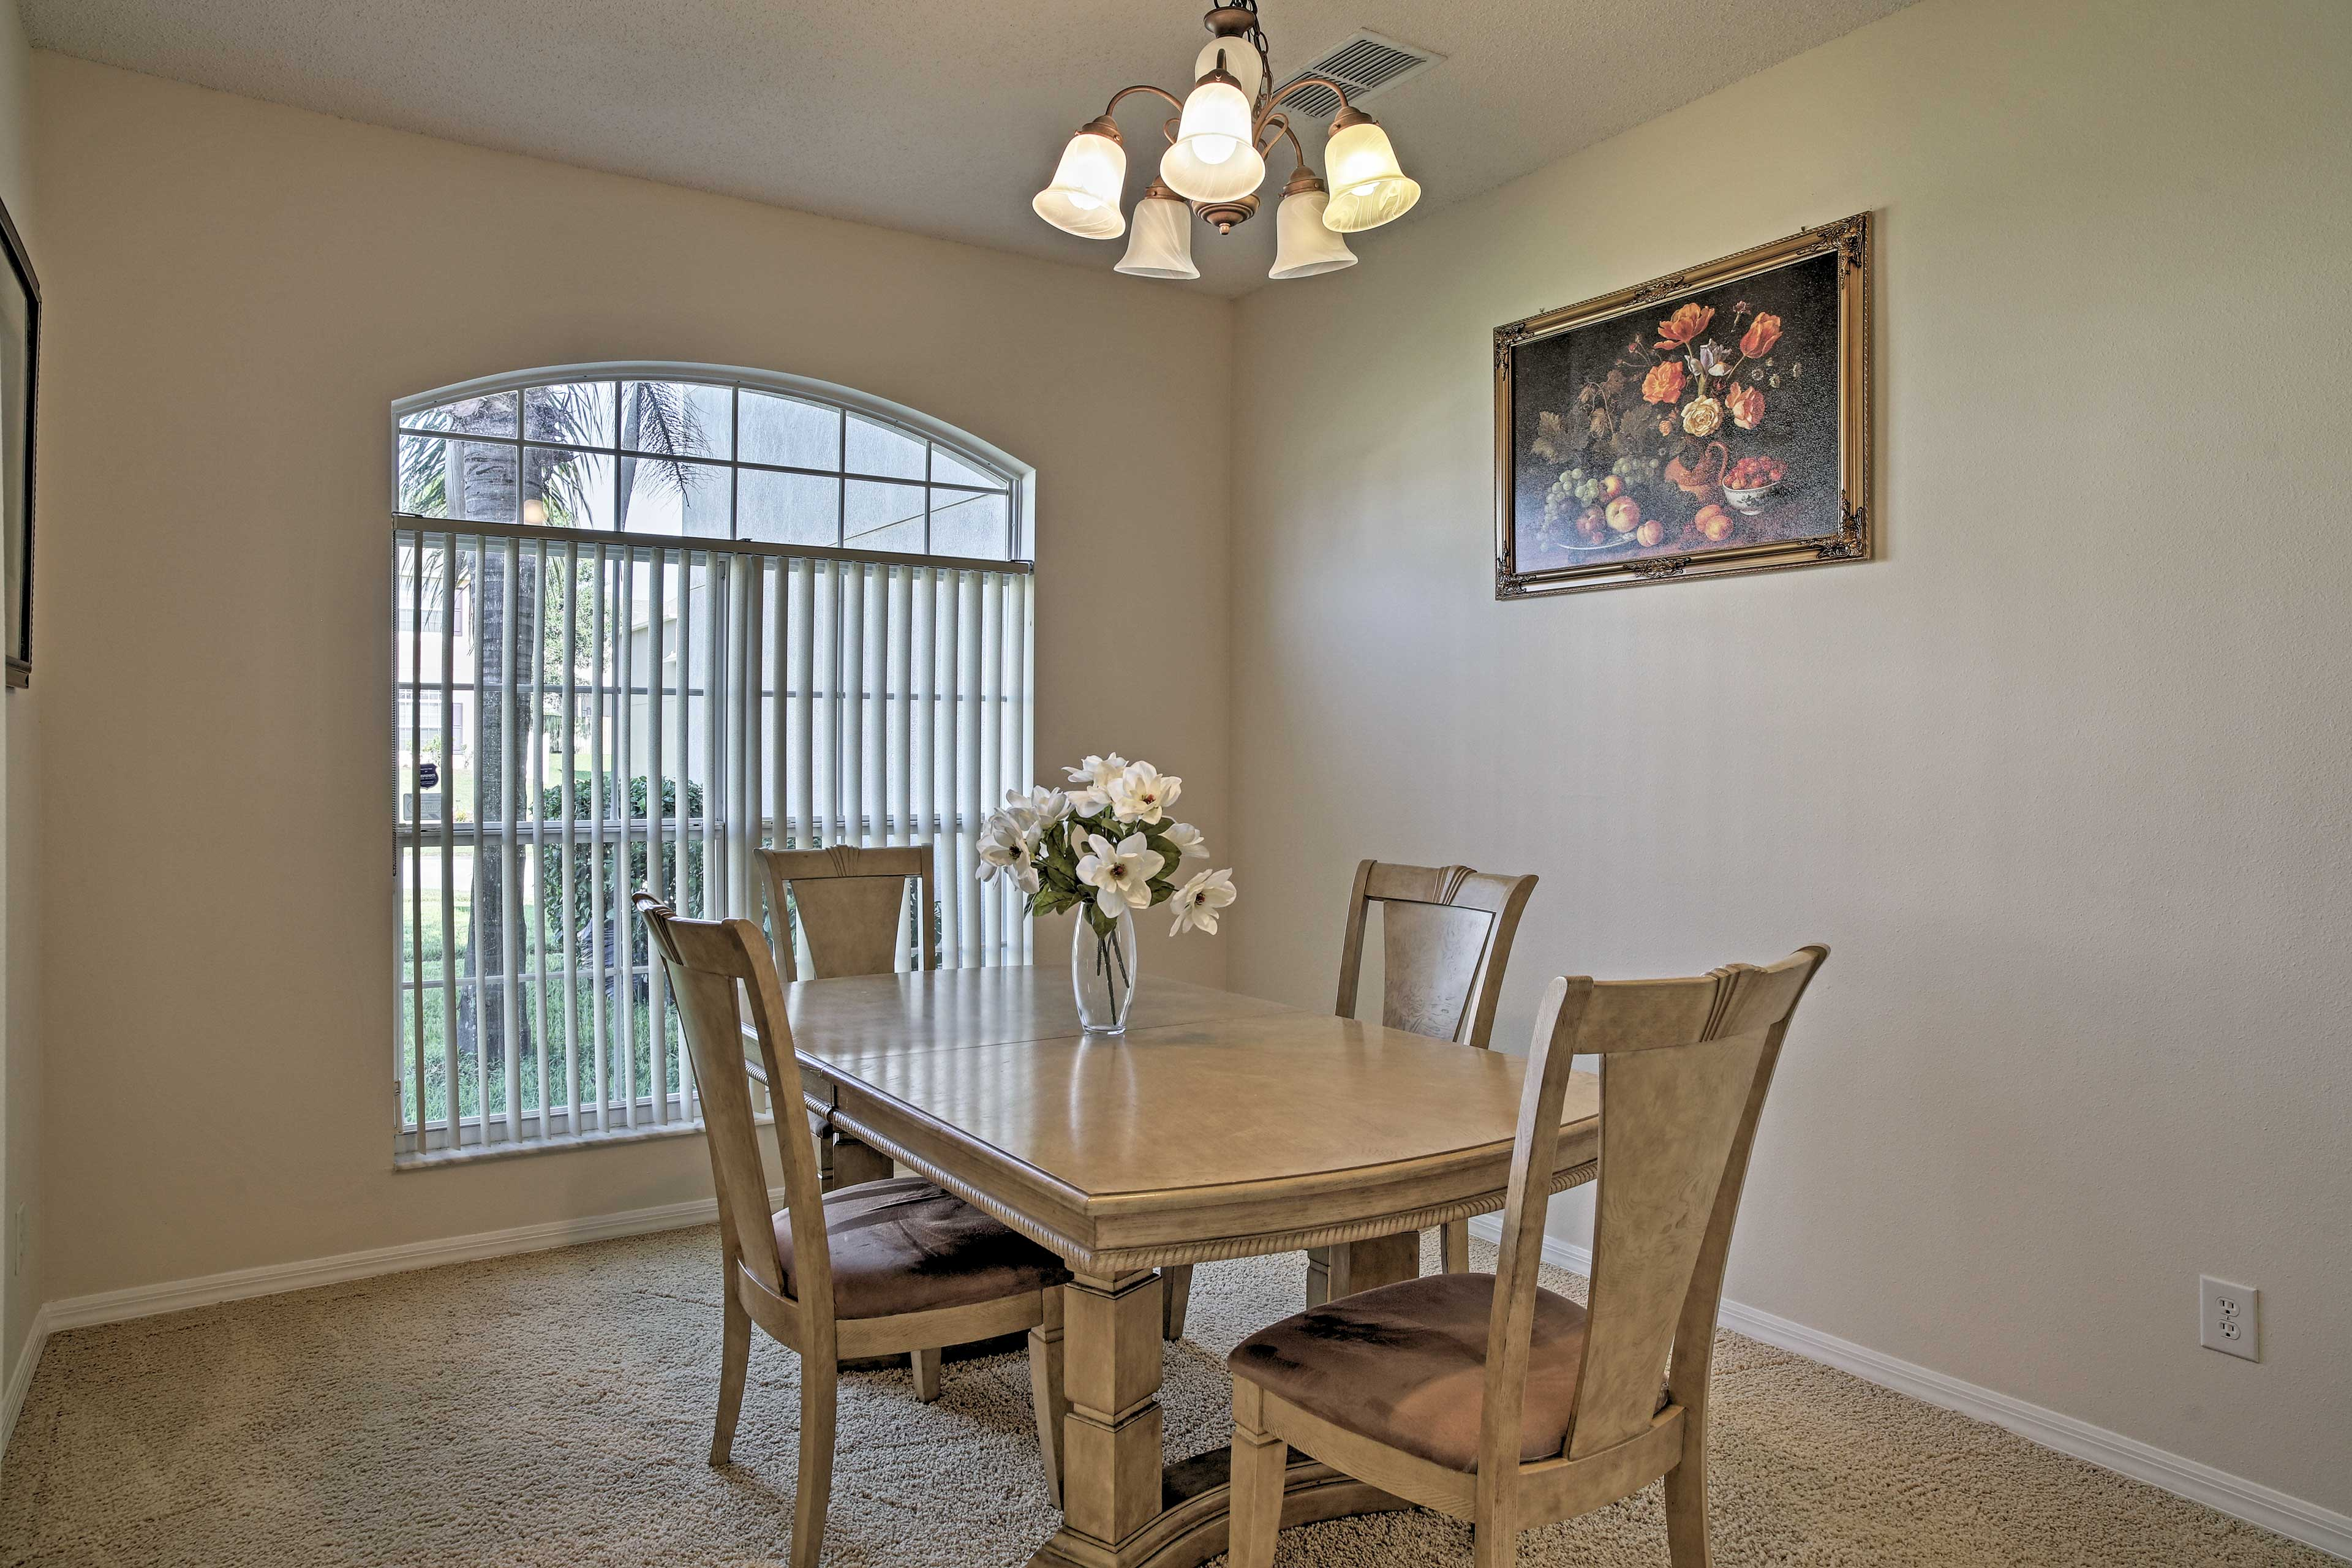 A formal dining table can be set to seat 4.